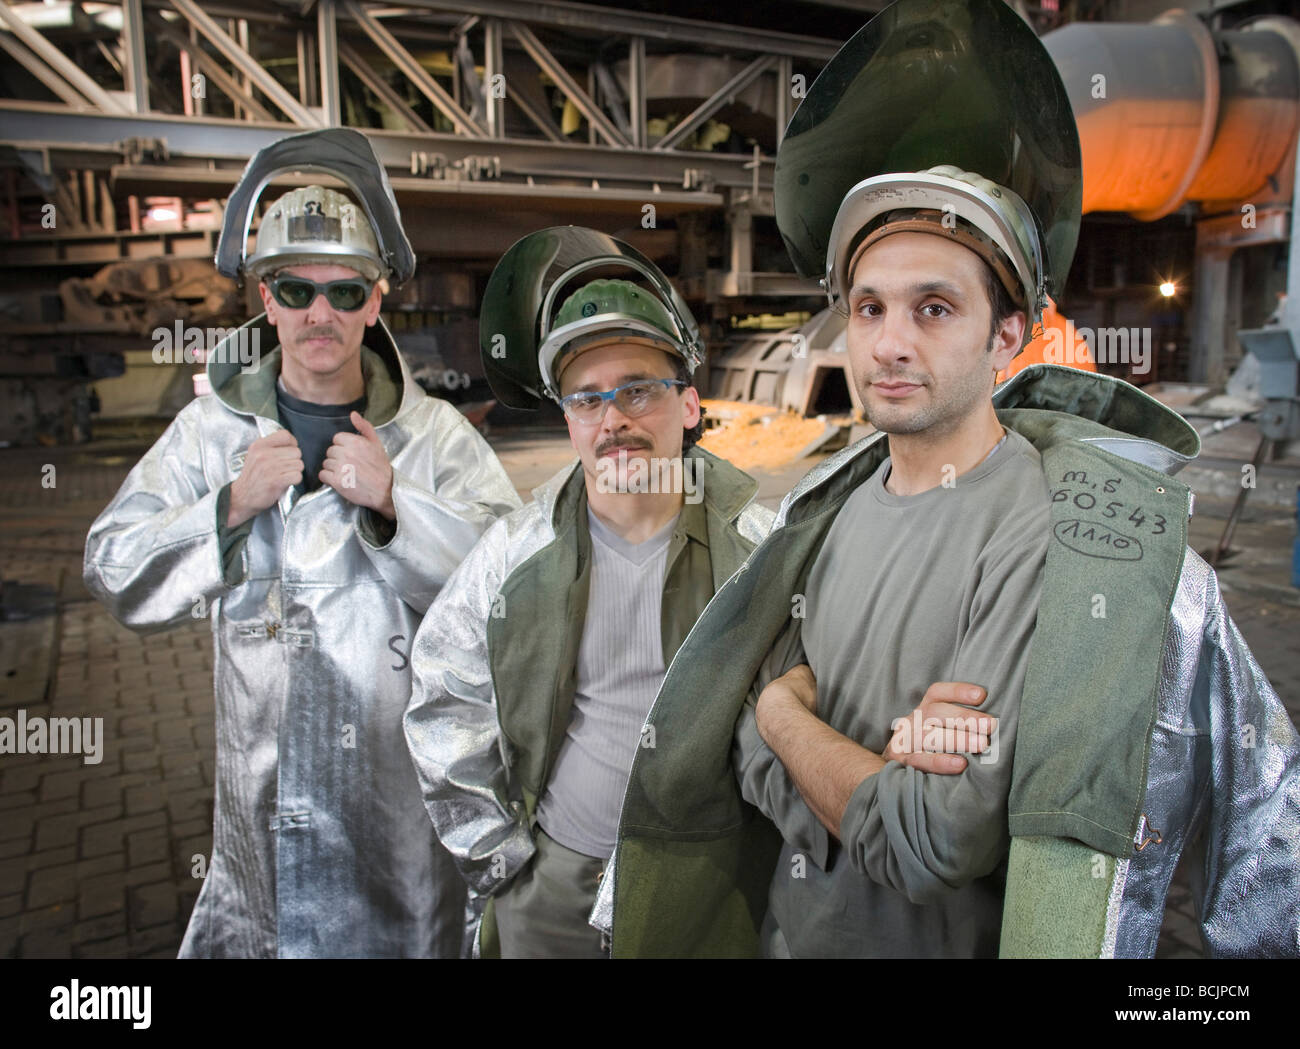 WORKERS WITH PROTECTIVE CLOTHES AT STEELPLANT - Stock Image